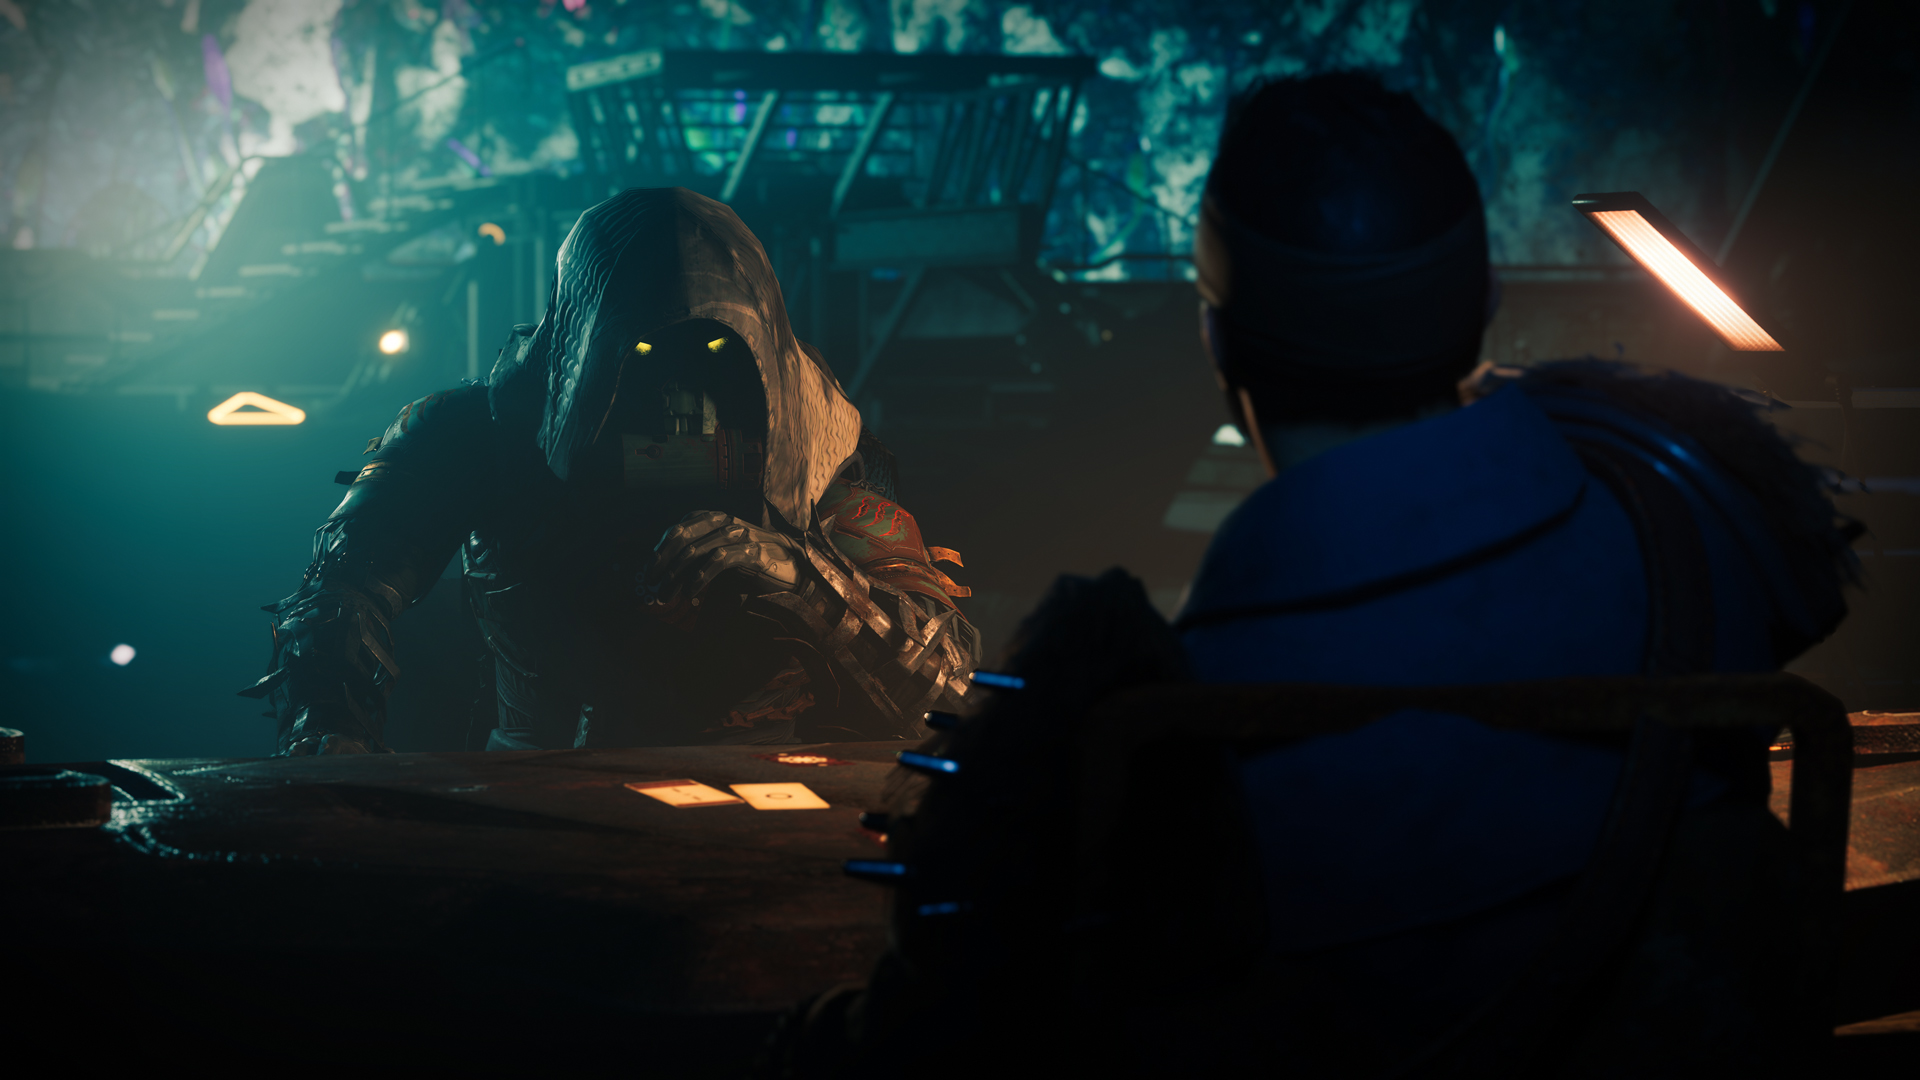 Destiny 2 Update 2 2 0 Patch Notes, Weapon Meta Shift